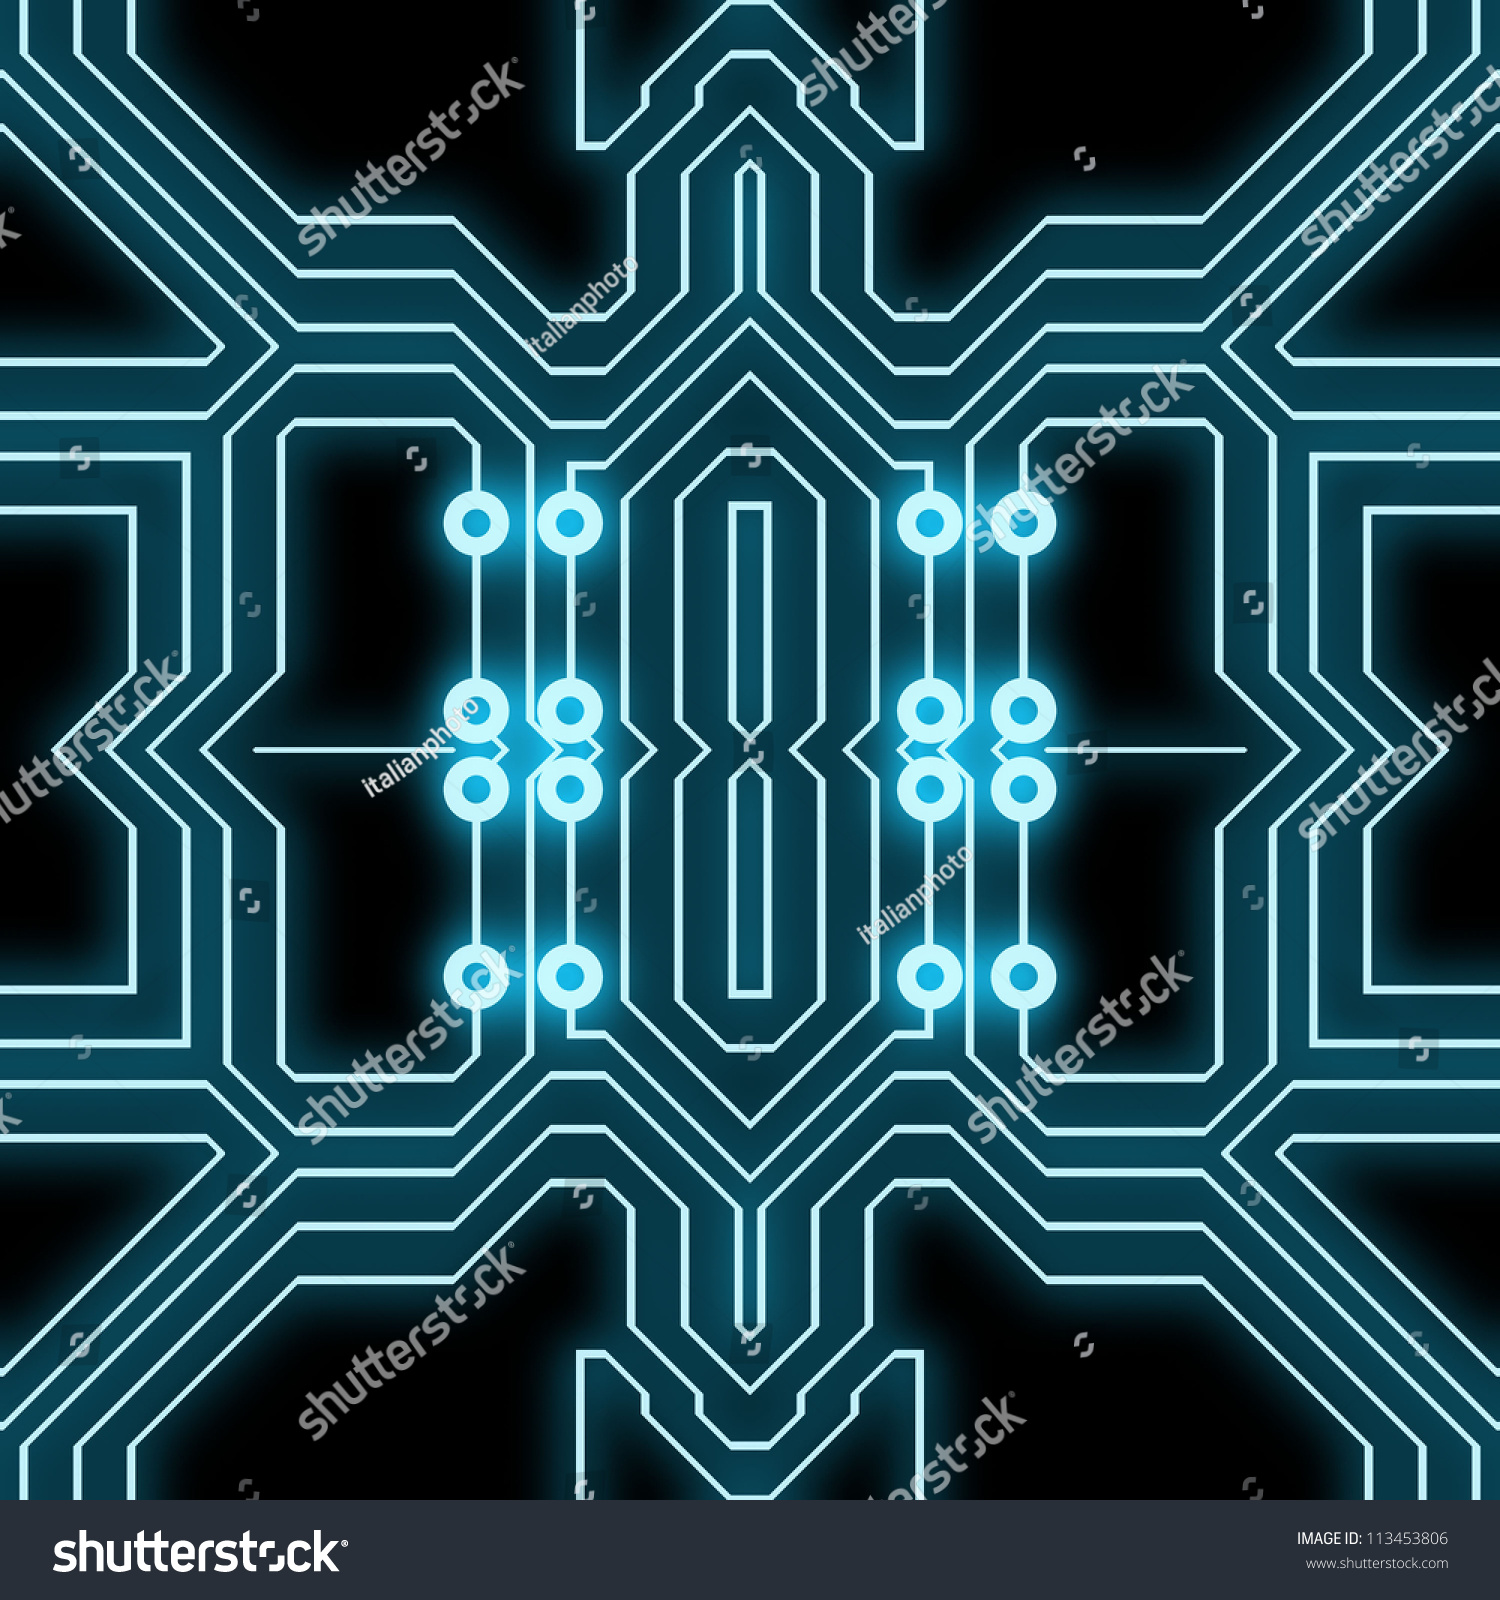 Abstract Computer Chip Background Stock Illustration ...